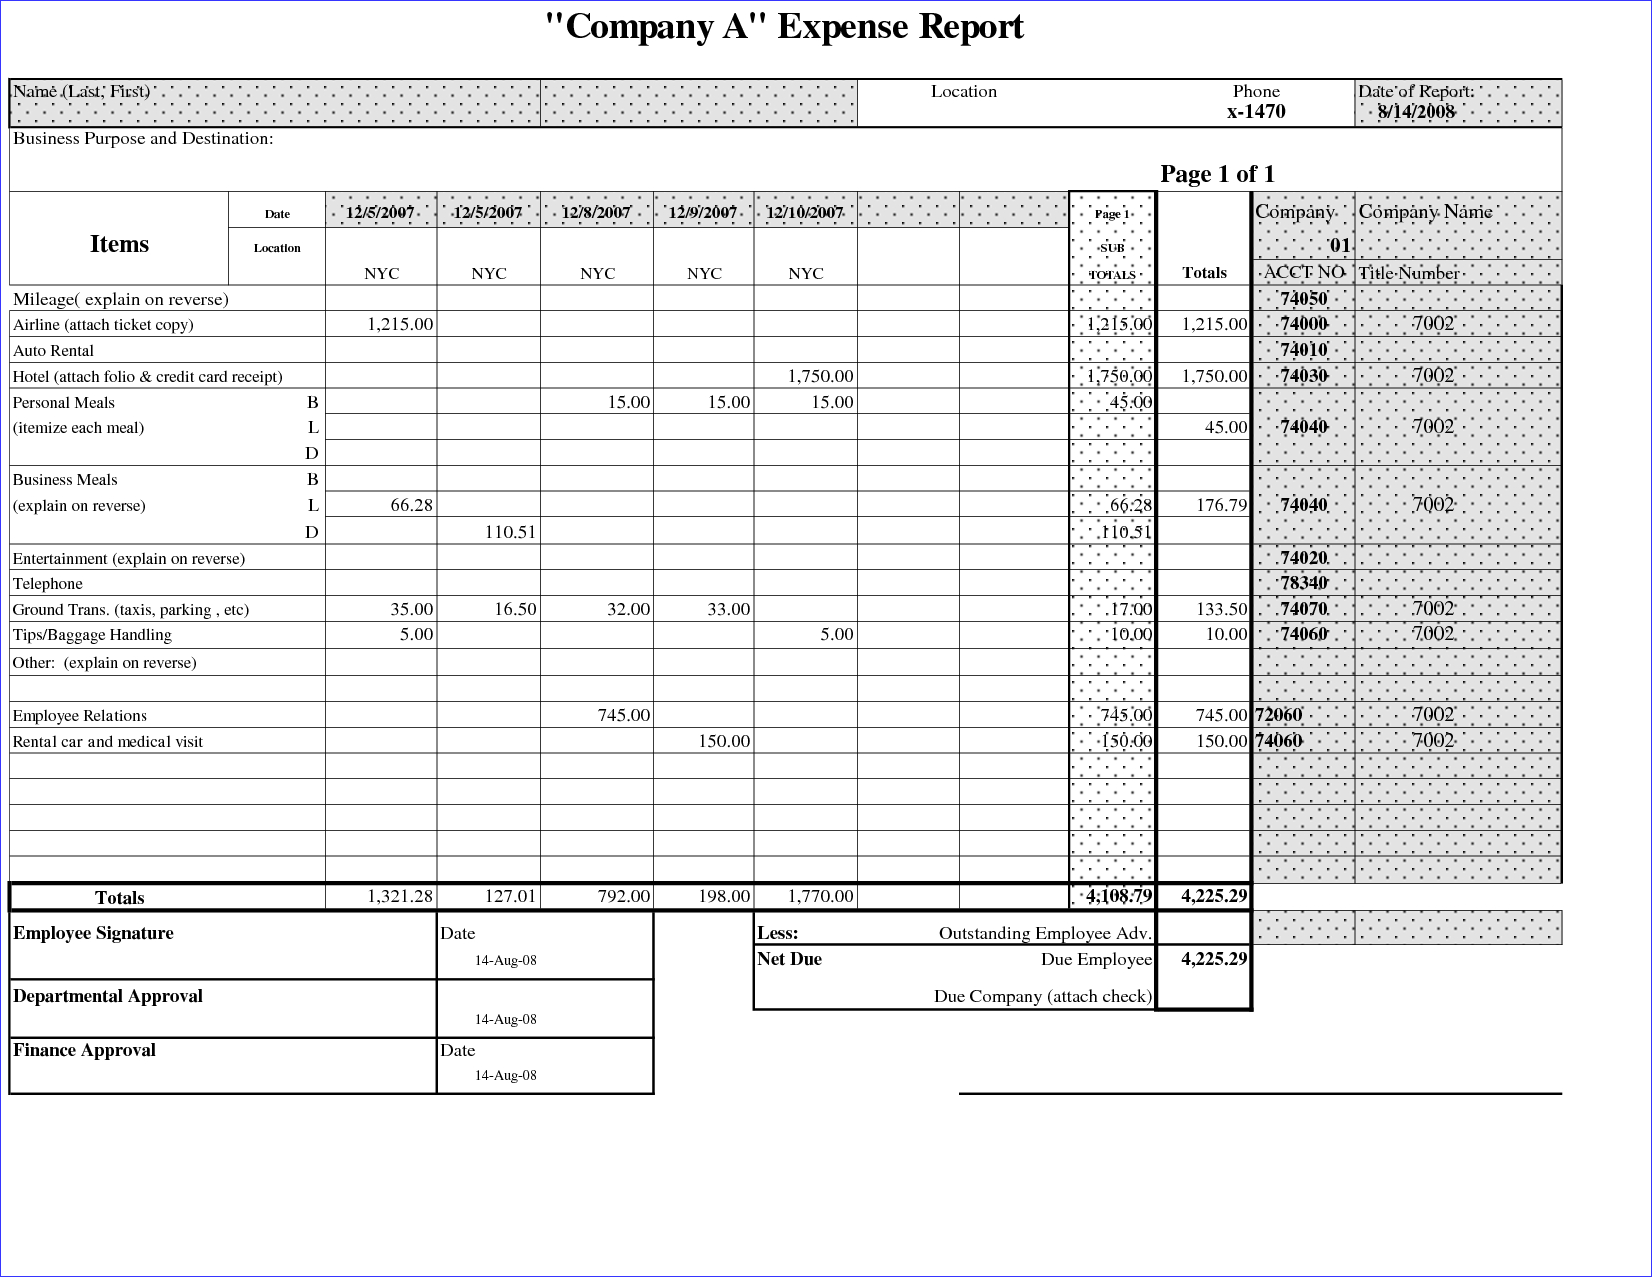 025 Business Expense Report Template Basic Company With Throughout Company Expense Report Template